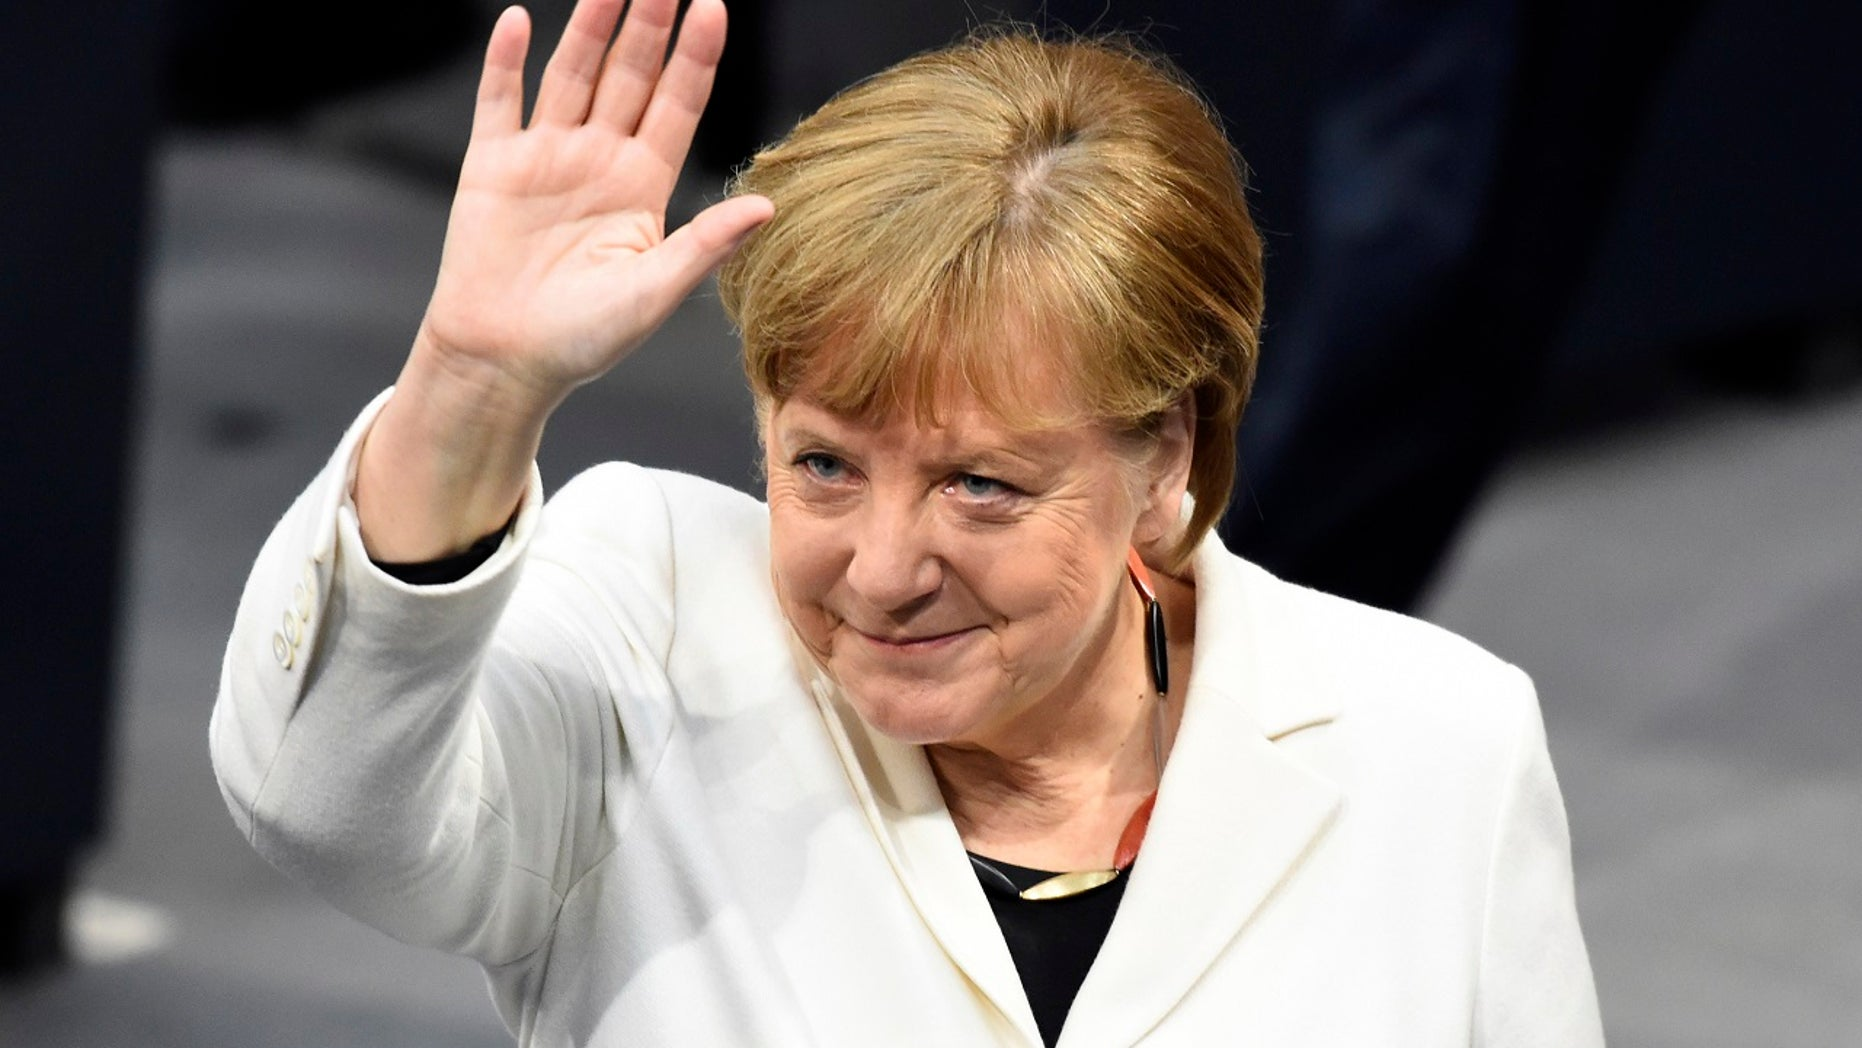 German Chancellor Angela Merkel waves when Germany's parliament Bundestag meets to elect Angela Merkel for a fourth term as chancellor in Berlin, Germany, Wednesday, March 14, 2018. (Gregor Fischer/dpa via AP)